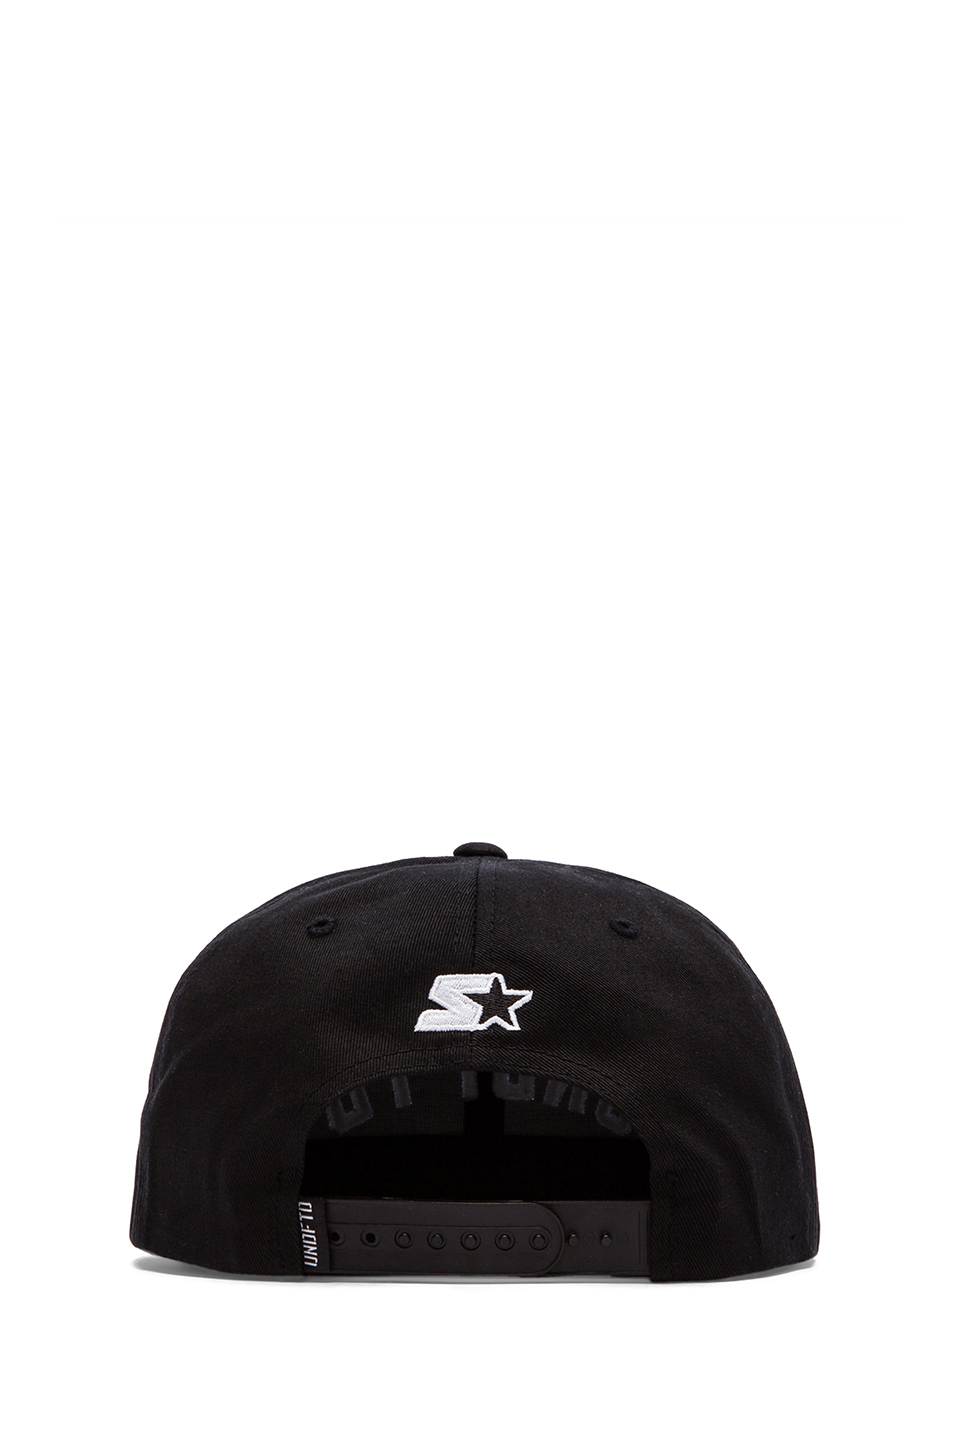 Lyst - Undefeated Global Starter Snapback in Black 9eee7f858358